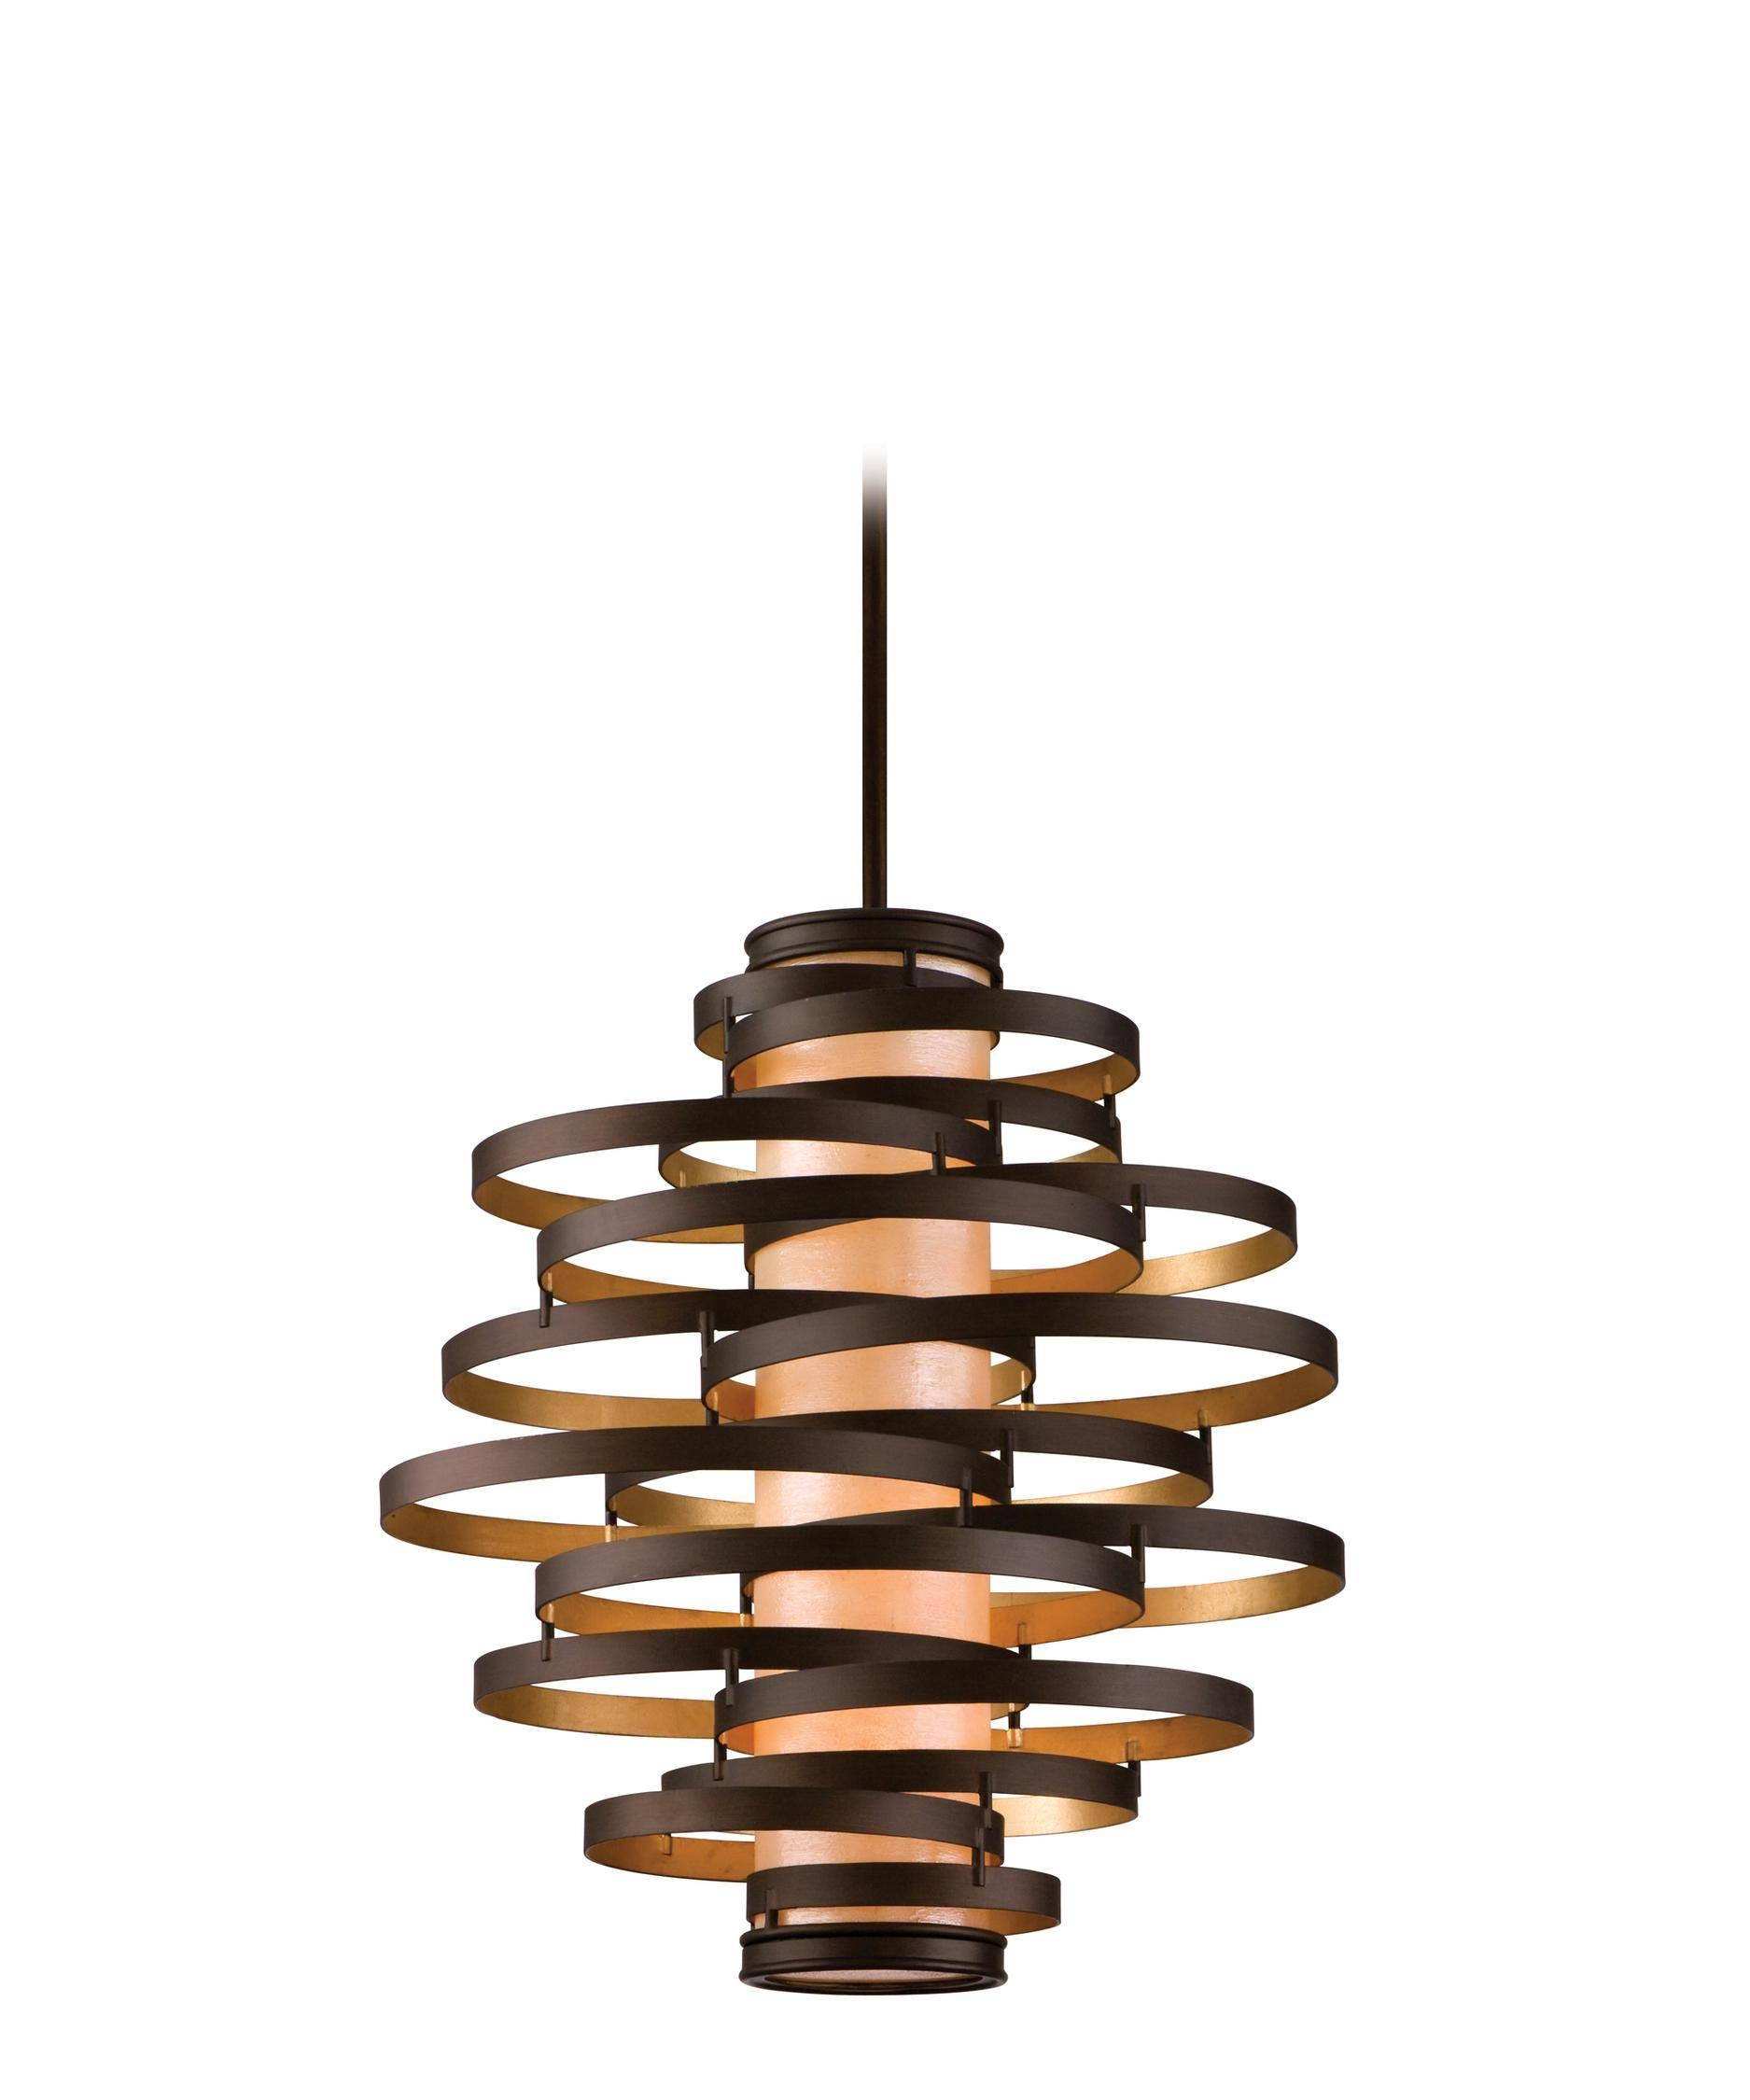 Corbett Lighting Ve-44 Vertigo 30 Inch Wide 4 Light Large Pendant for Corbett Vertigo Small Pendant Lights (Image 13 of 15)